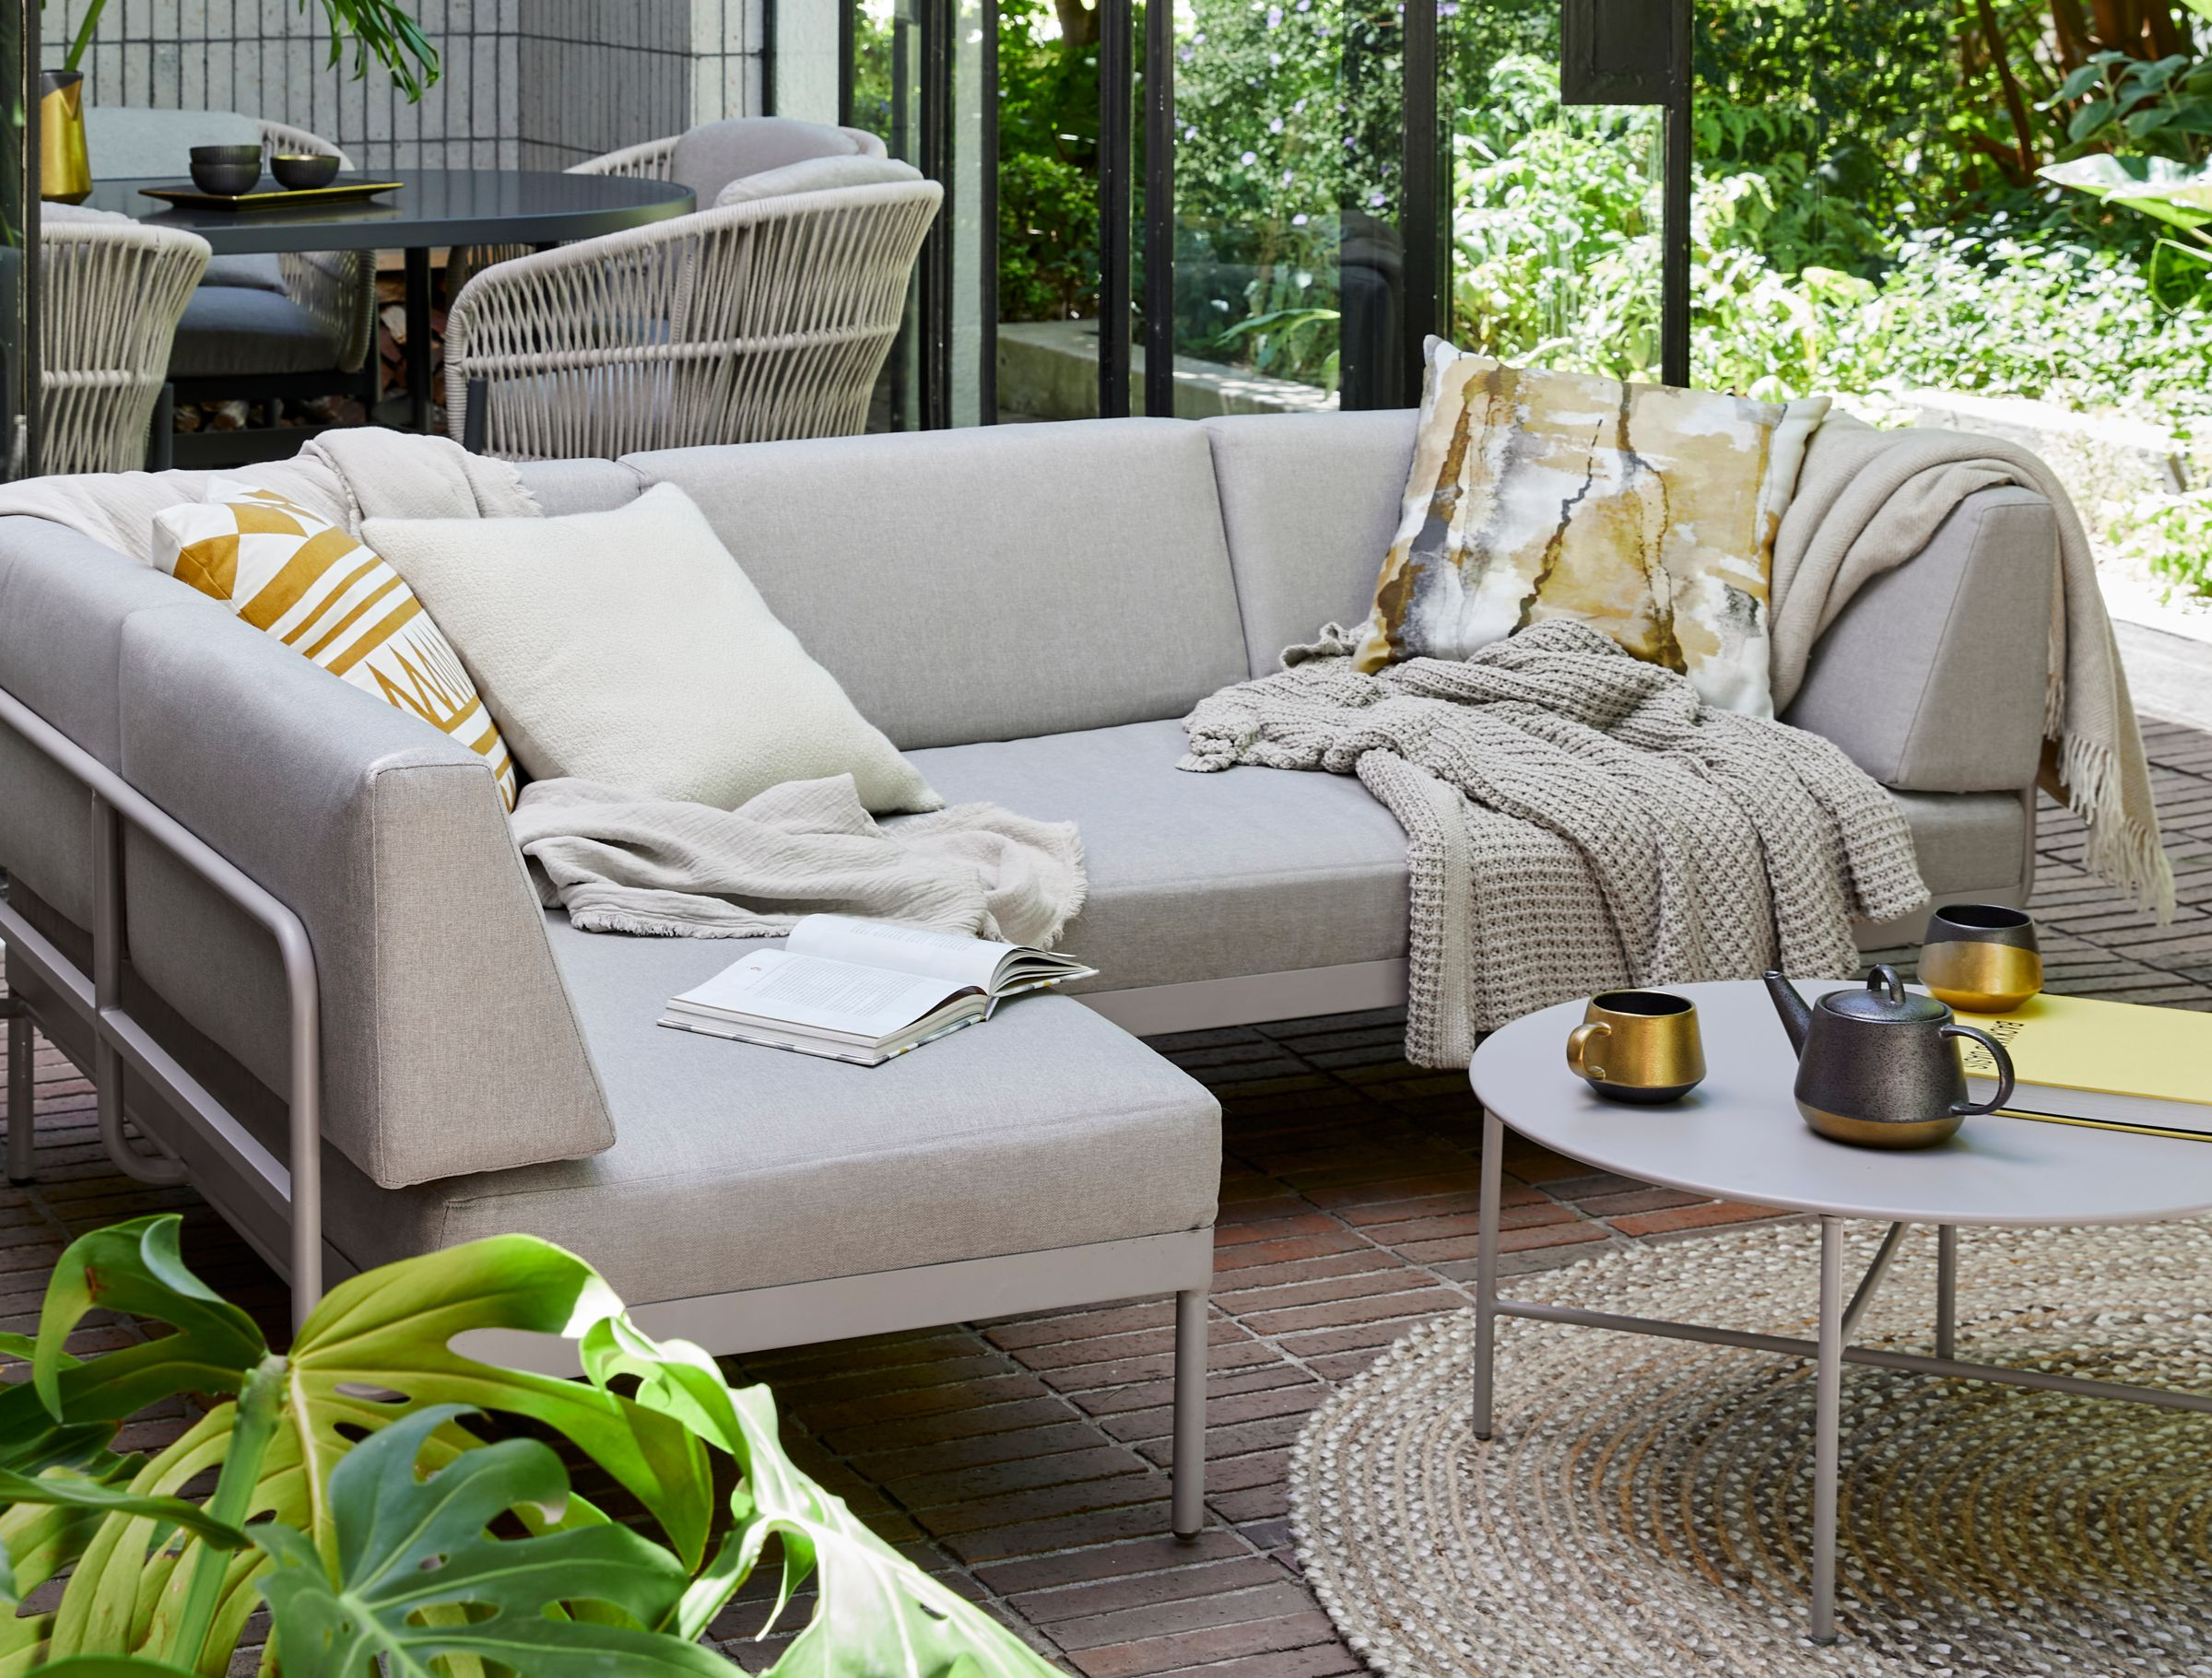 Outdoor living spaces, lounger